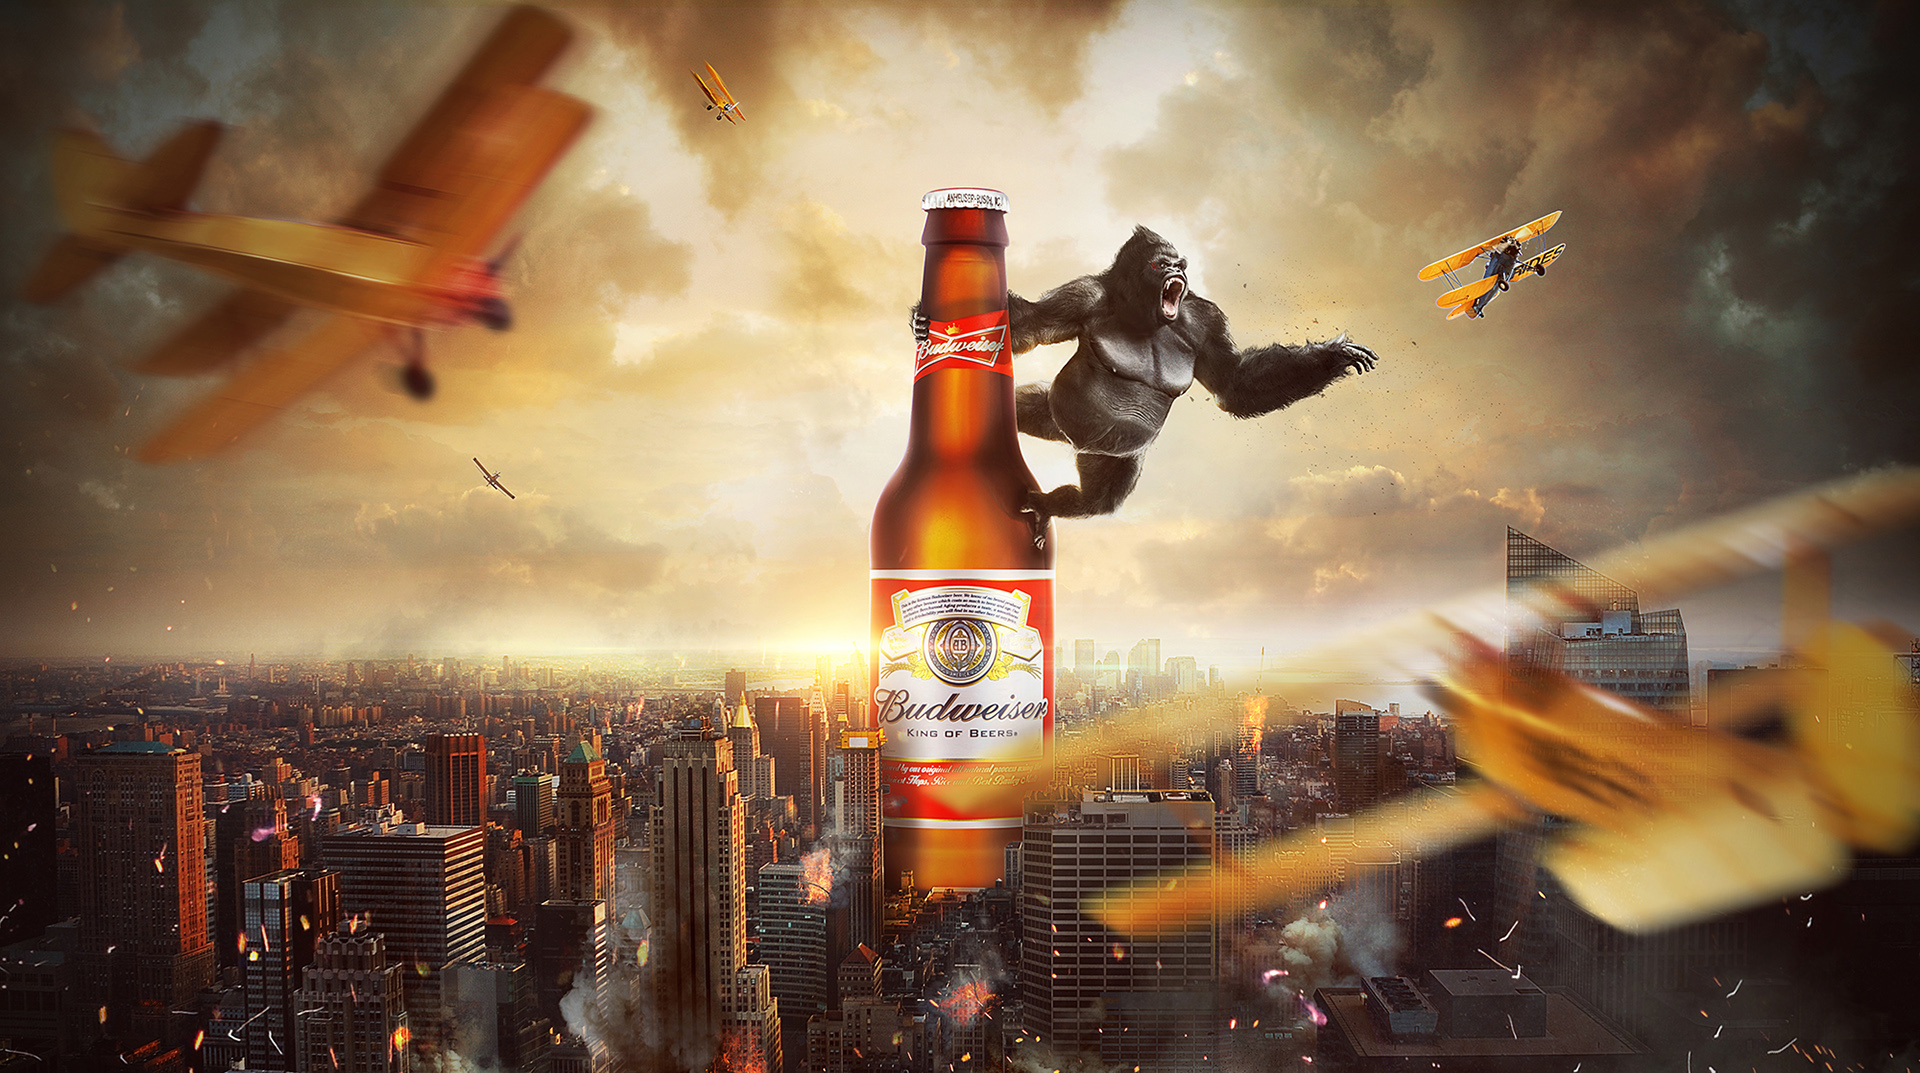 budweiser vietnam -vietnam photo manipulation- vietnam composite photography-photography advertising in vietnam